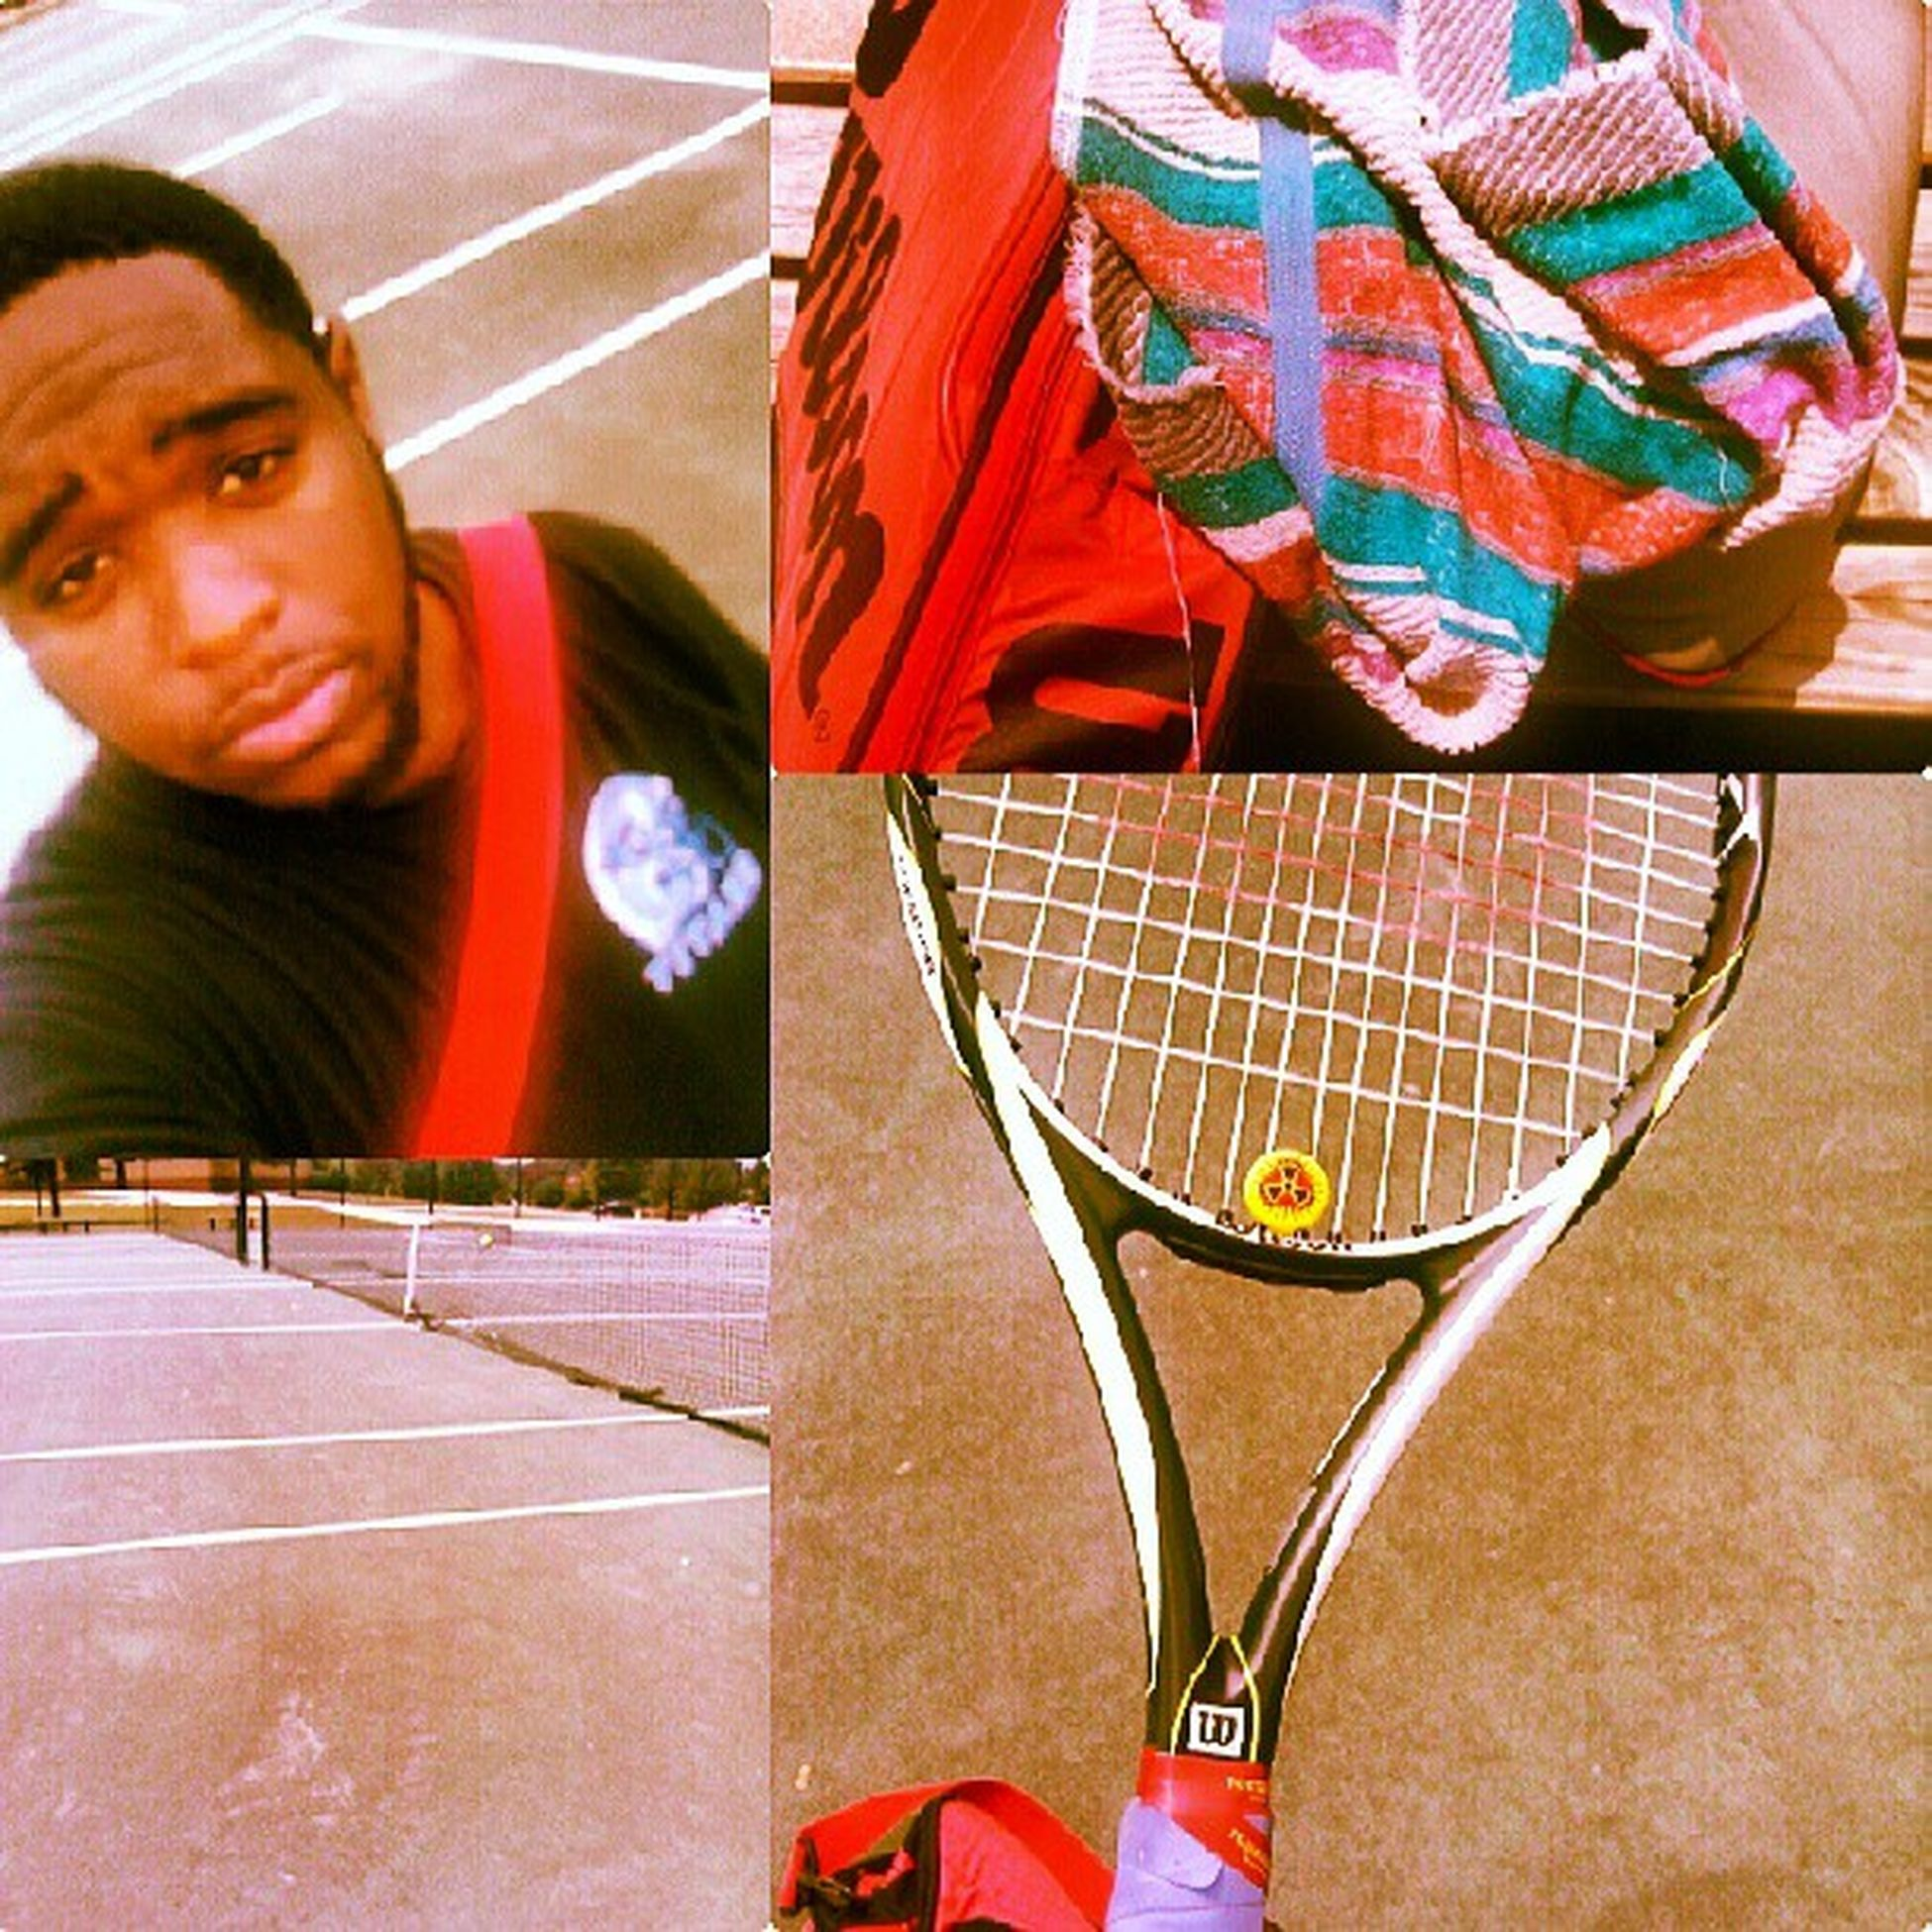 At the tennis court grindin...Tennis Wilson  Prince  Thirstisreal